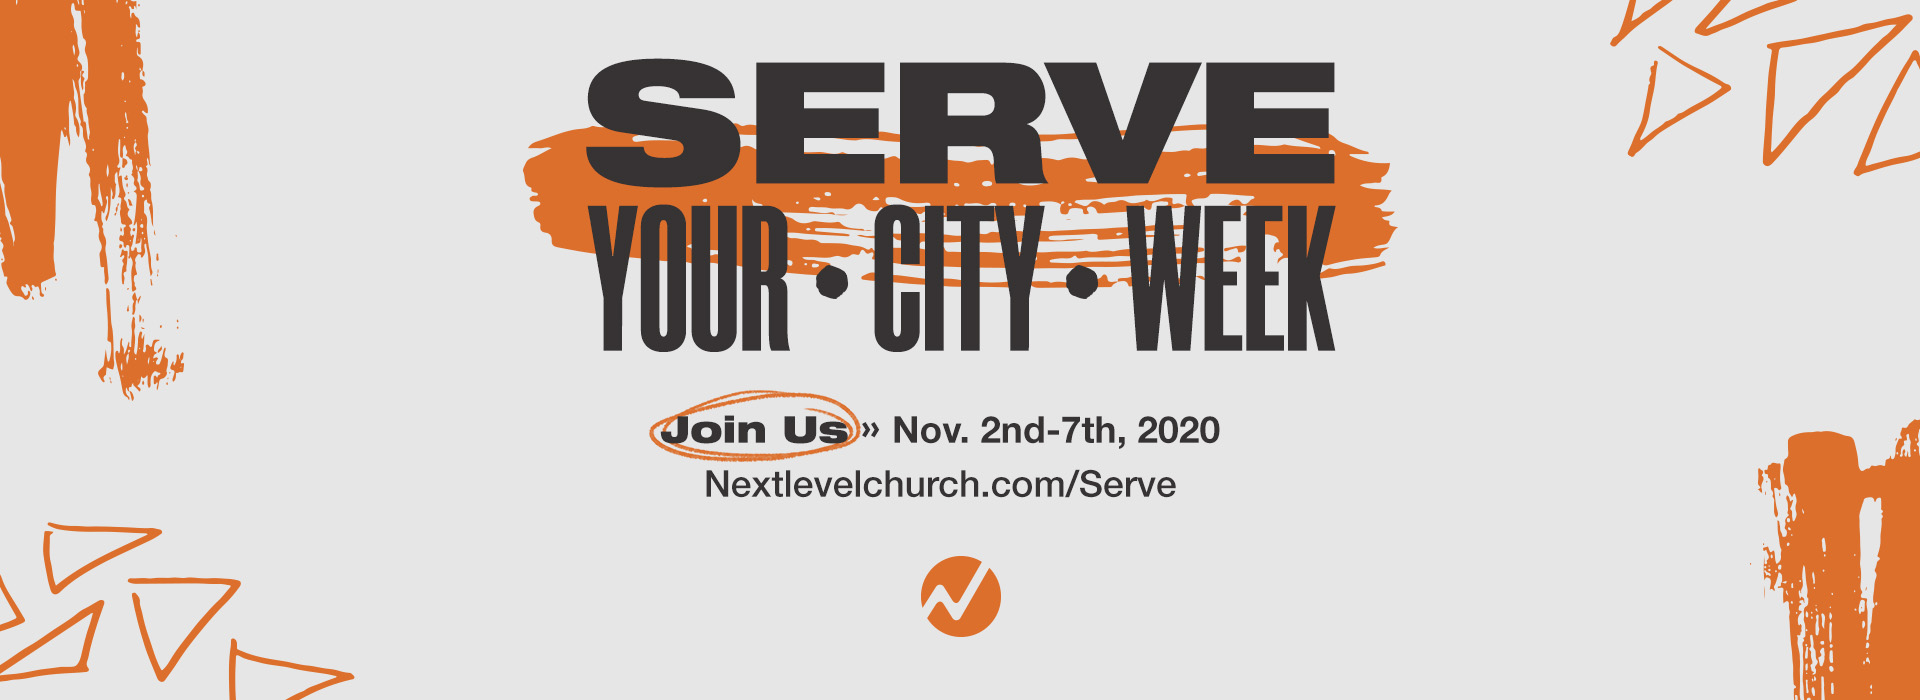 Serve Your City - Updated - 1920x700 - Title